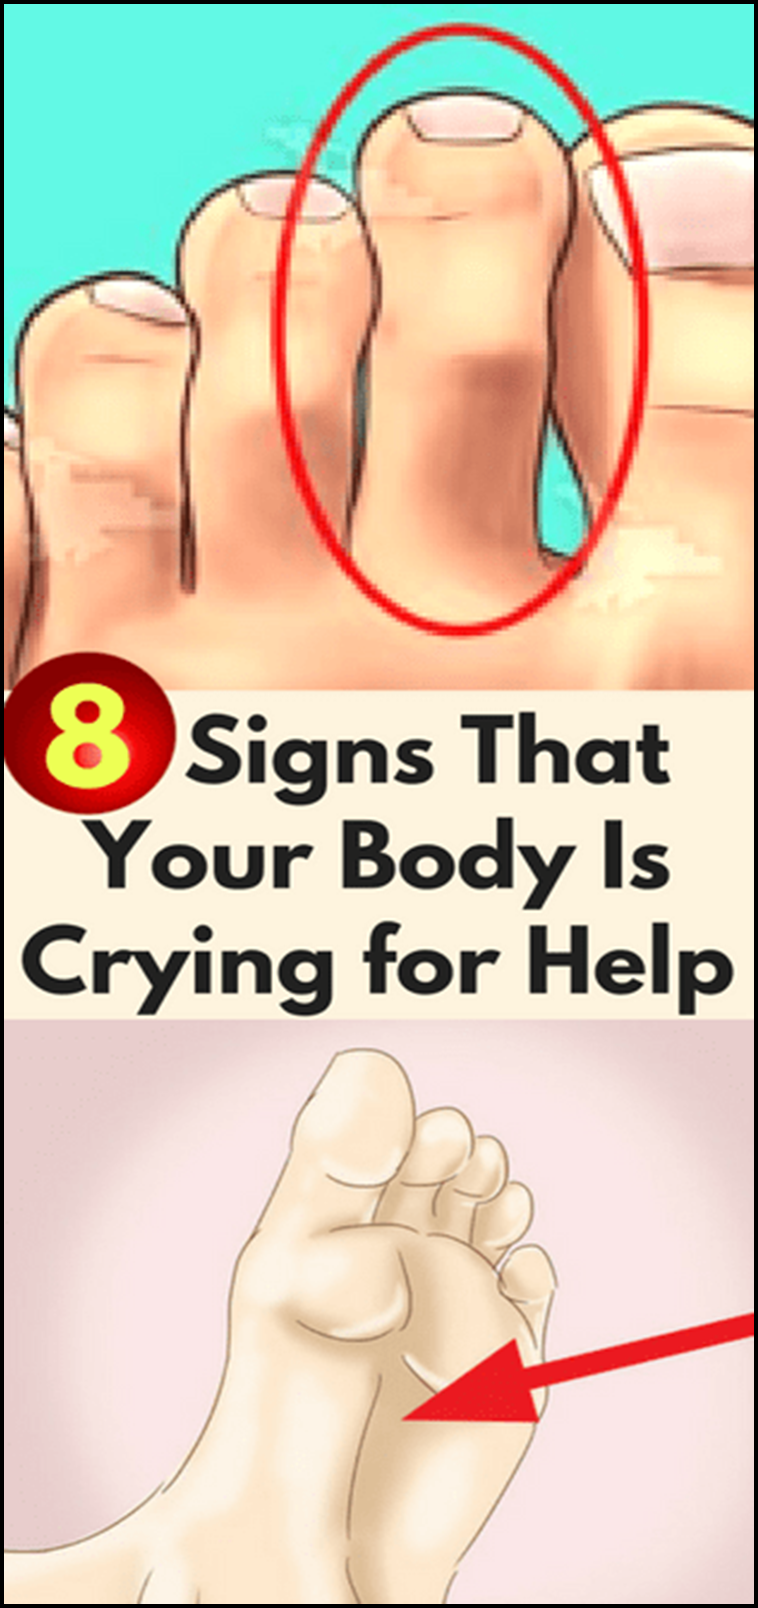 8Signs That Your Body IsCrying for Help